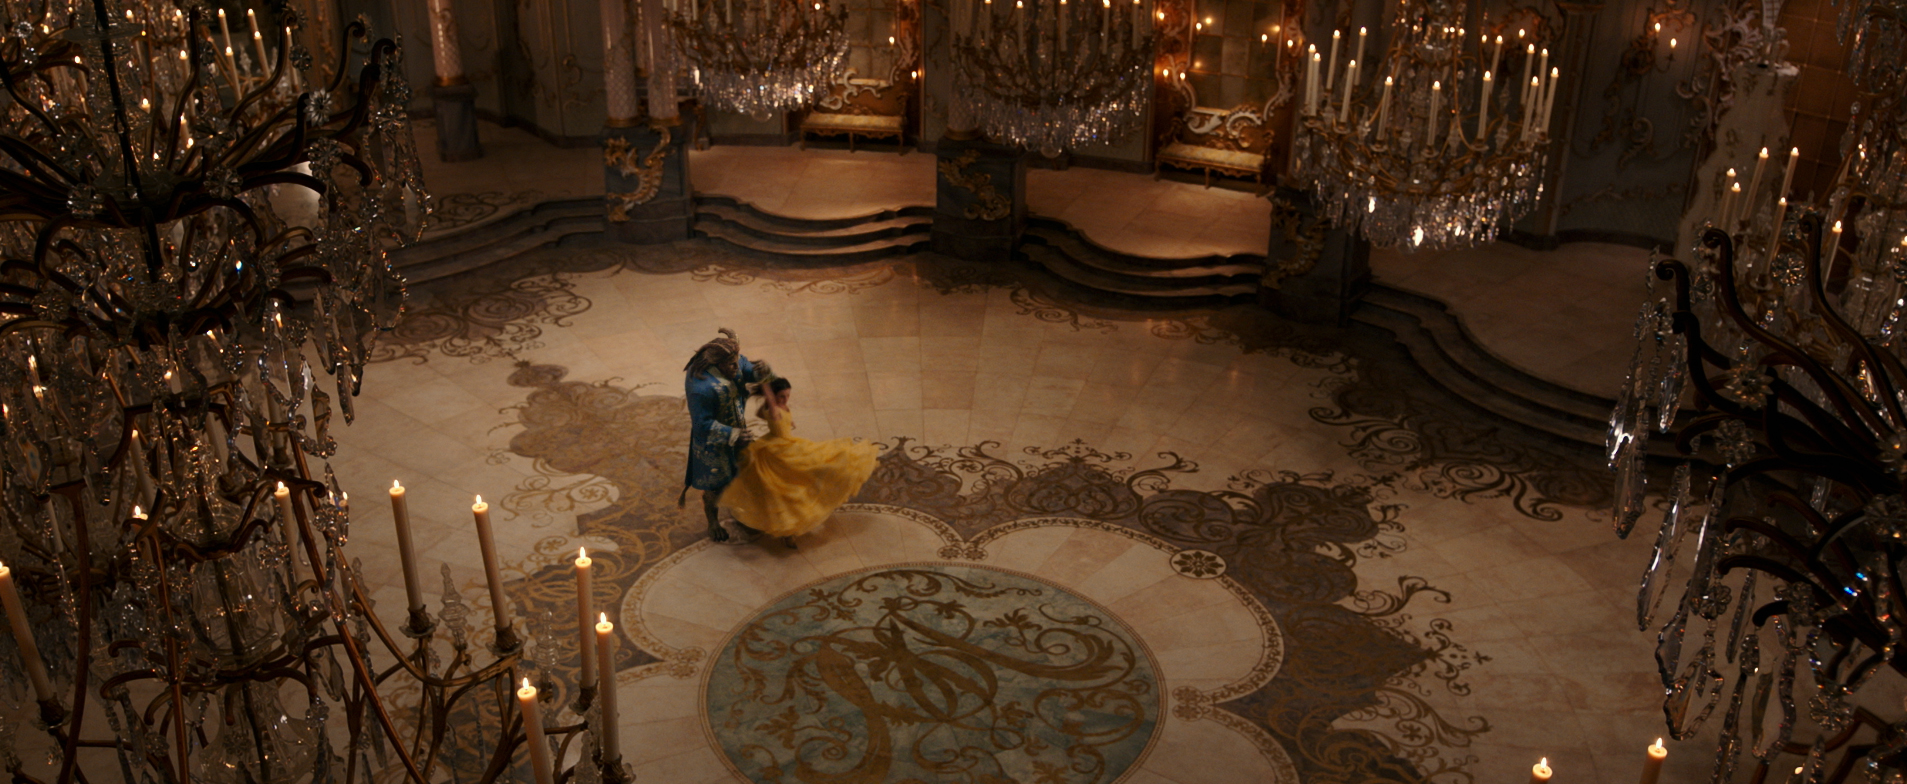 Disney's Live Action Beauty and the Beast